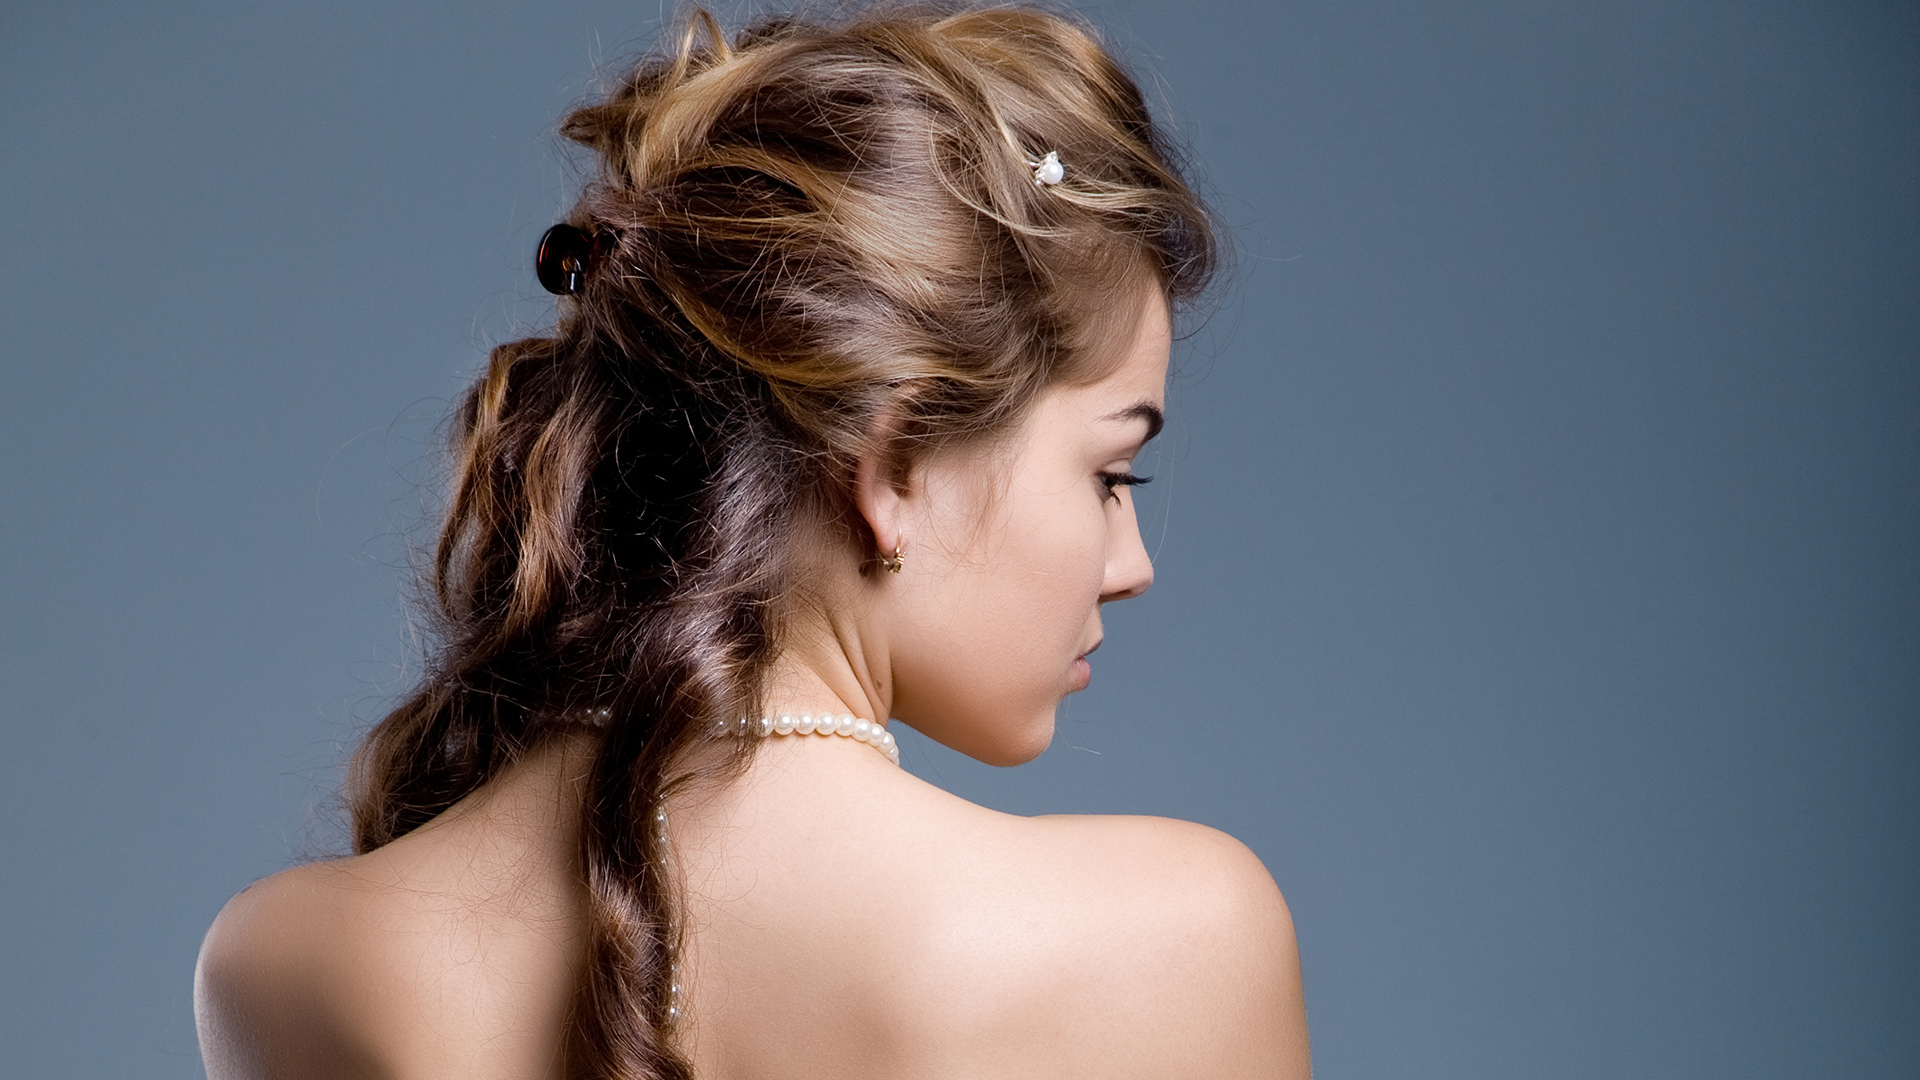 Hairstyles Video Download : hd-wallpapers-wedding-hairstyles-medium-length-hair-beautiful-hair ...